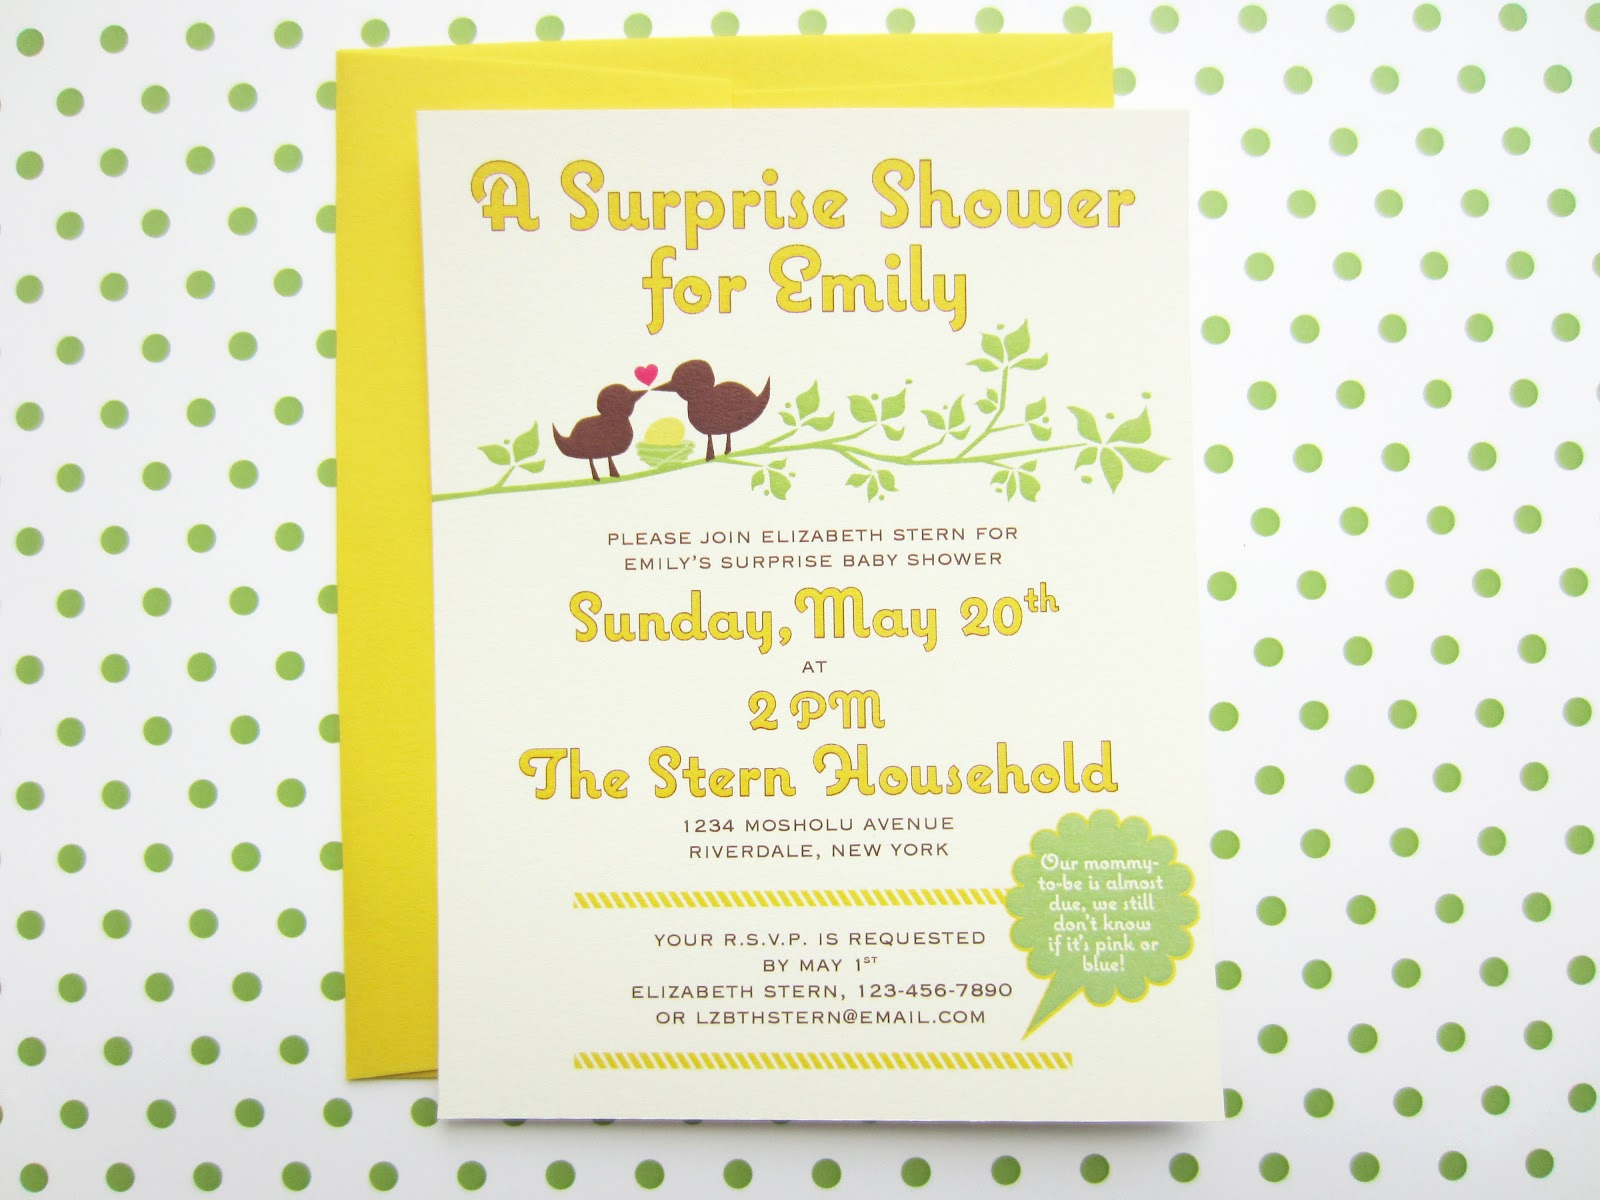 Surprise Baby Shower Invitation Wording Luxury Things I Make and Stuff I Like Surprise Baby Shower